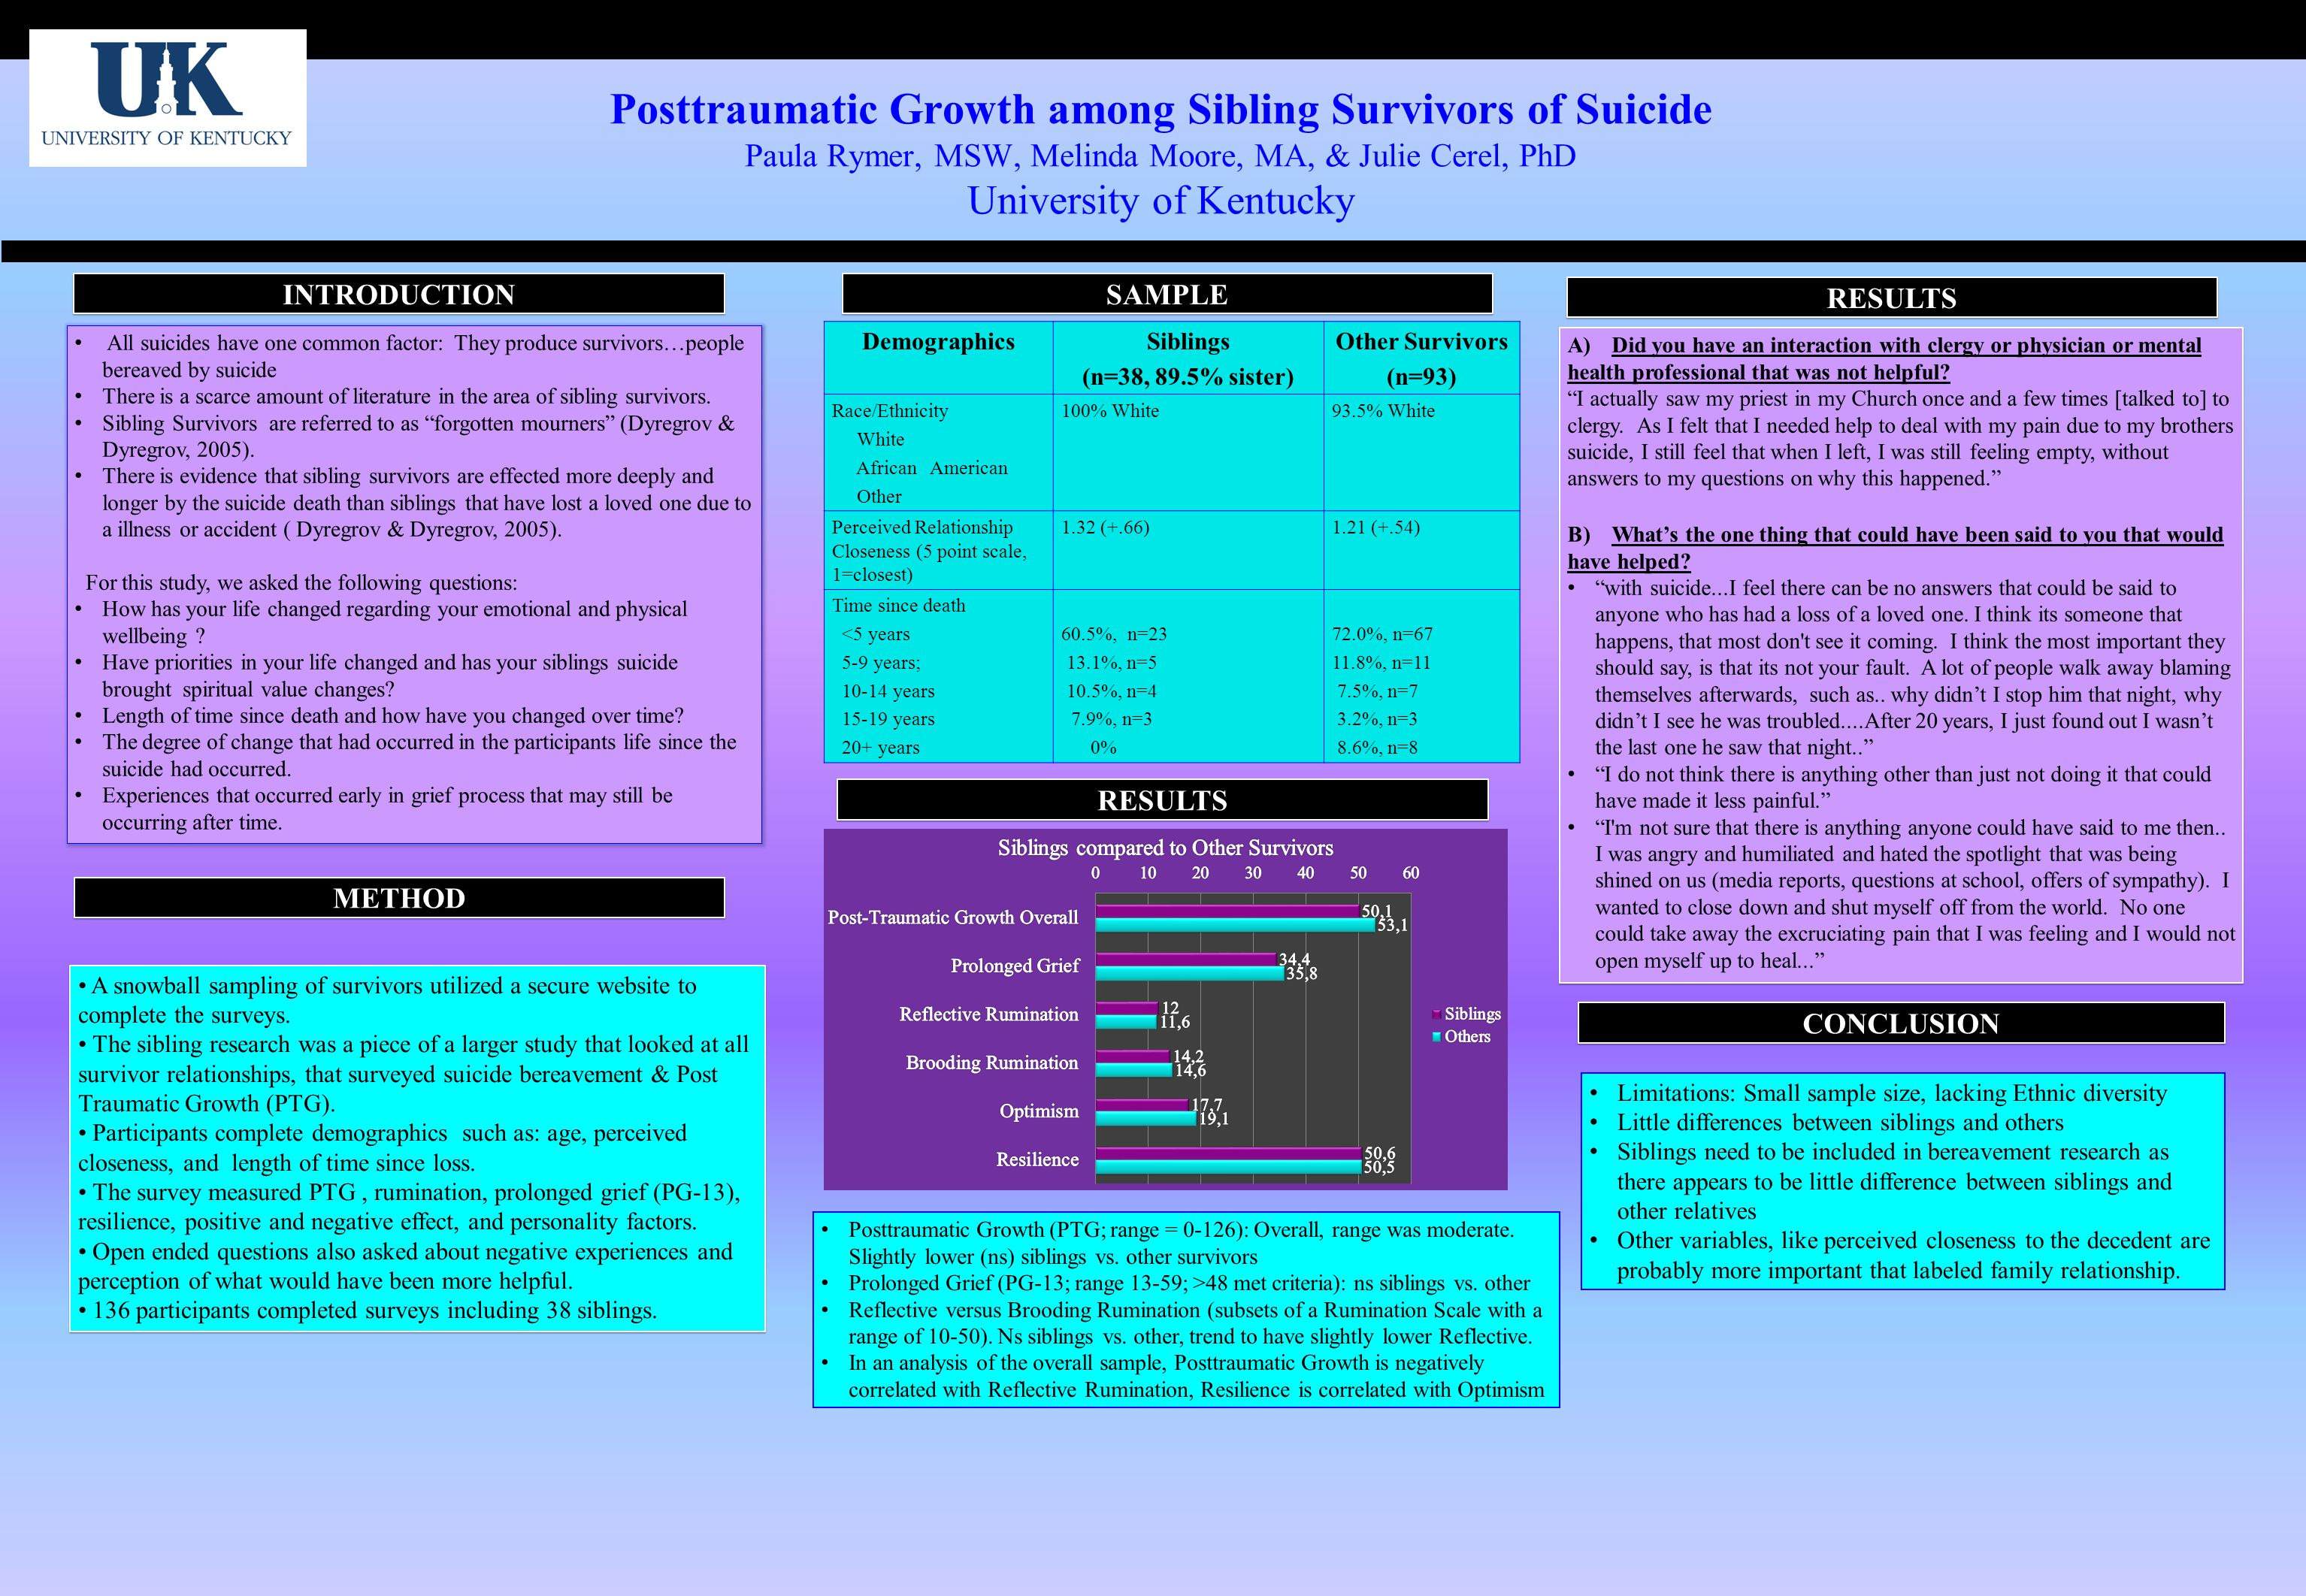 Posttraumatic Growth among Sibling Survivors of Suicide Paula Rymer, MSW, Melinda Moore, MA, & Julie Cerel, PhD University of Kentucky INTRODUCTION A